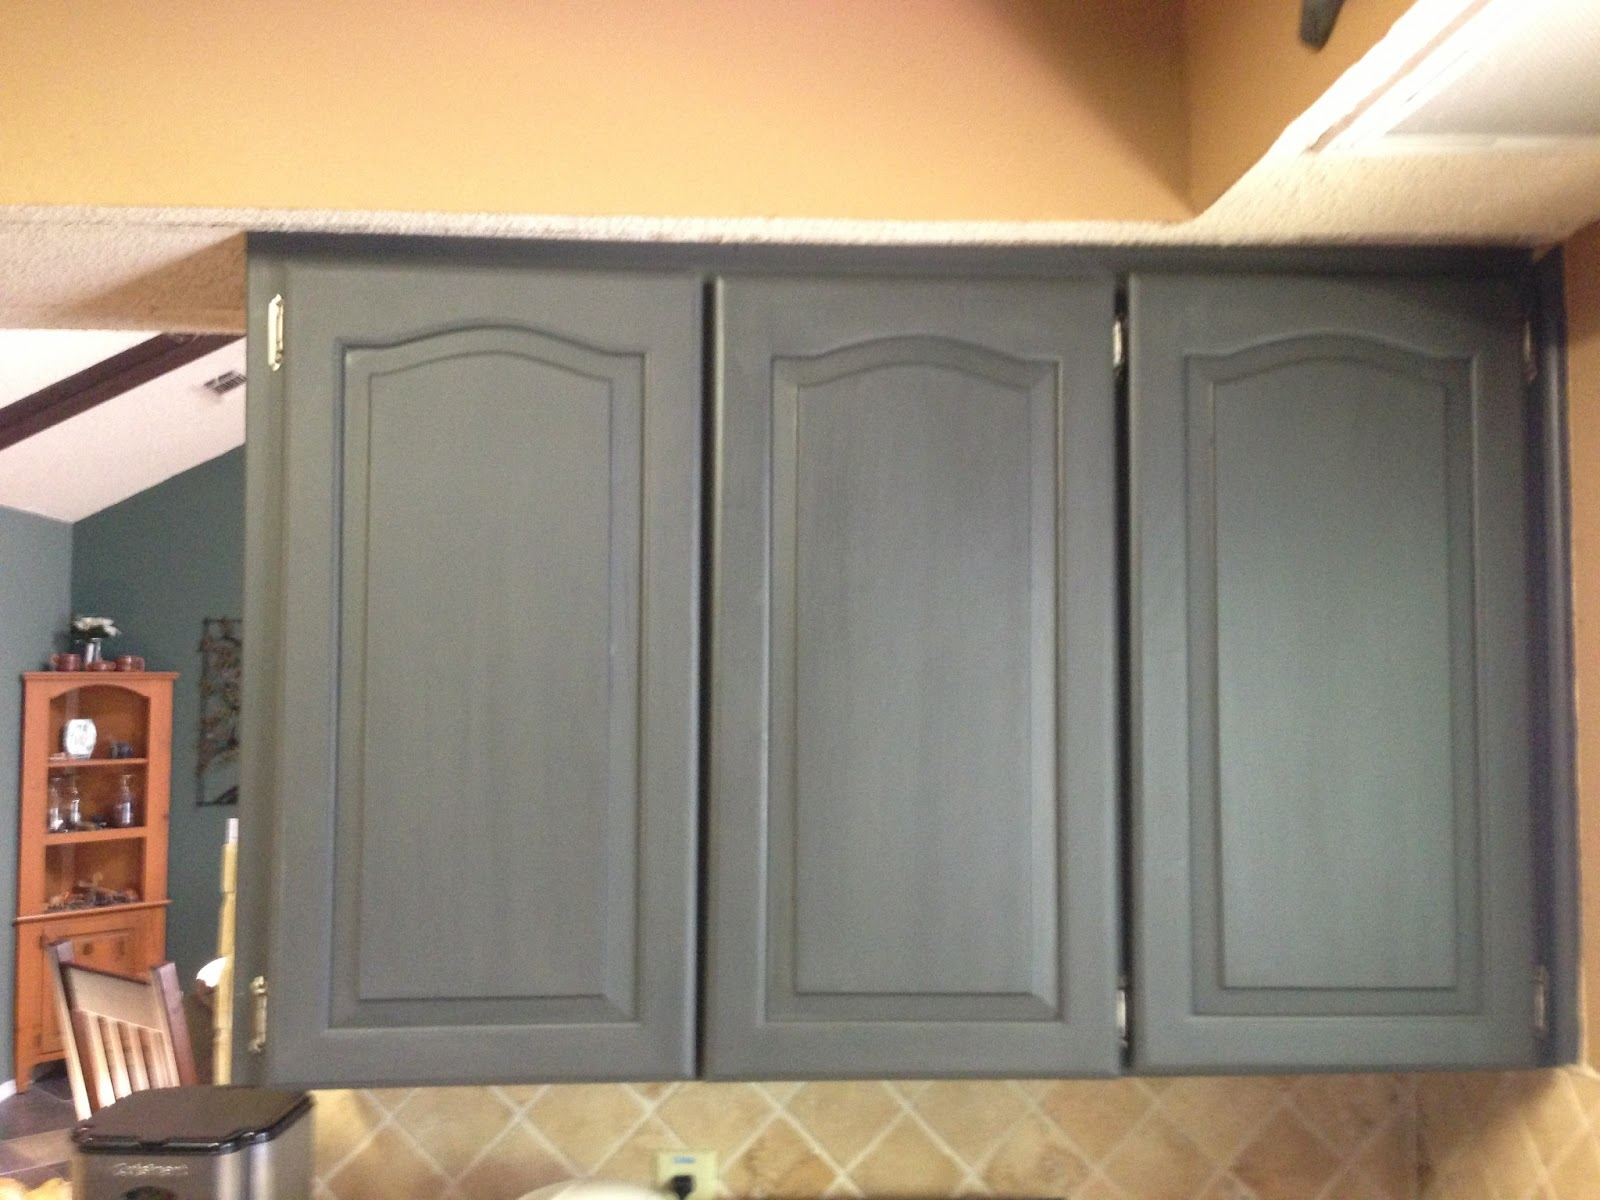 Wilker do 39 s using chalk paint to refinish kitchen cabinets for Best latex paint for kitchen cabinets